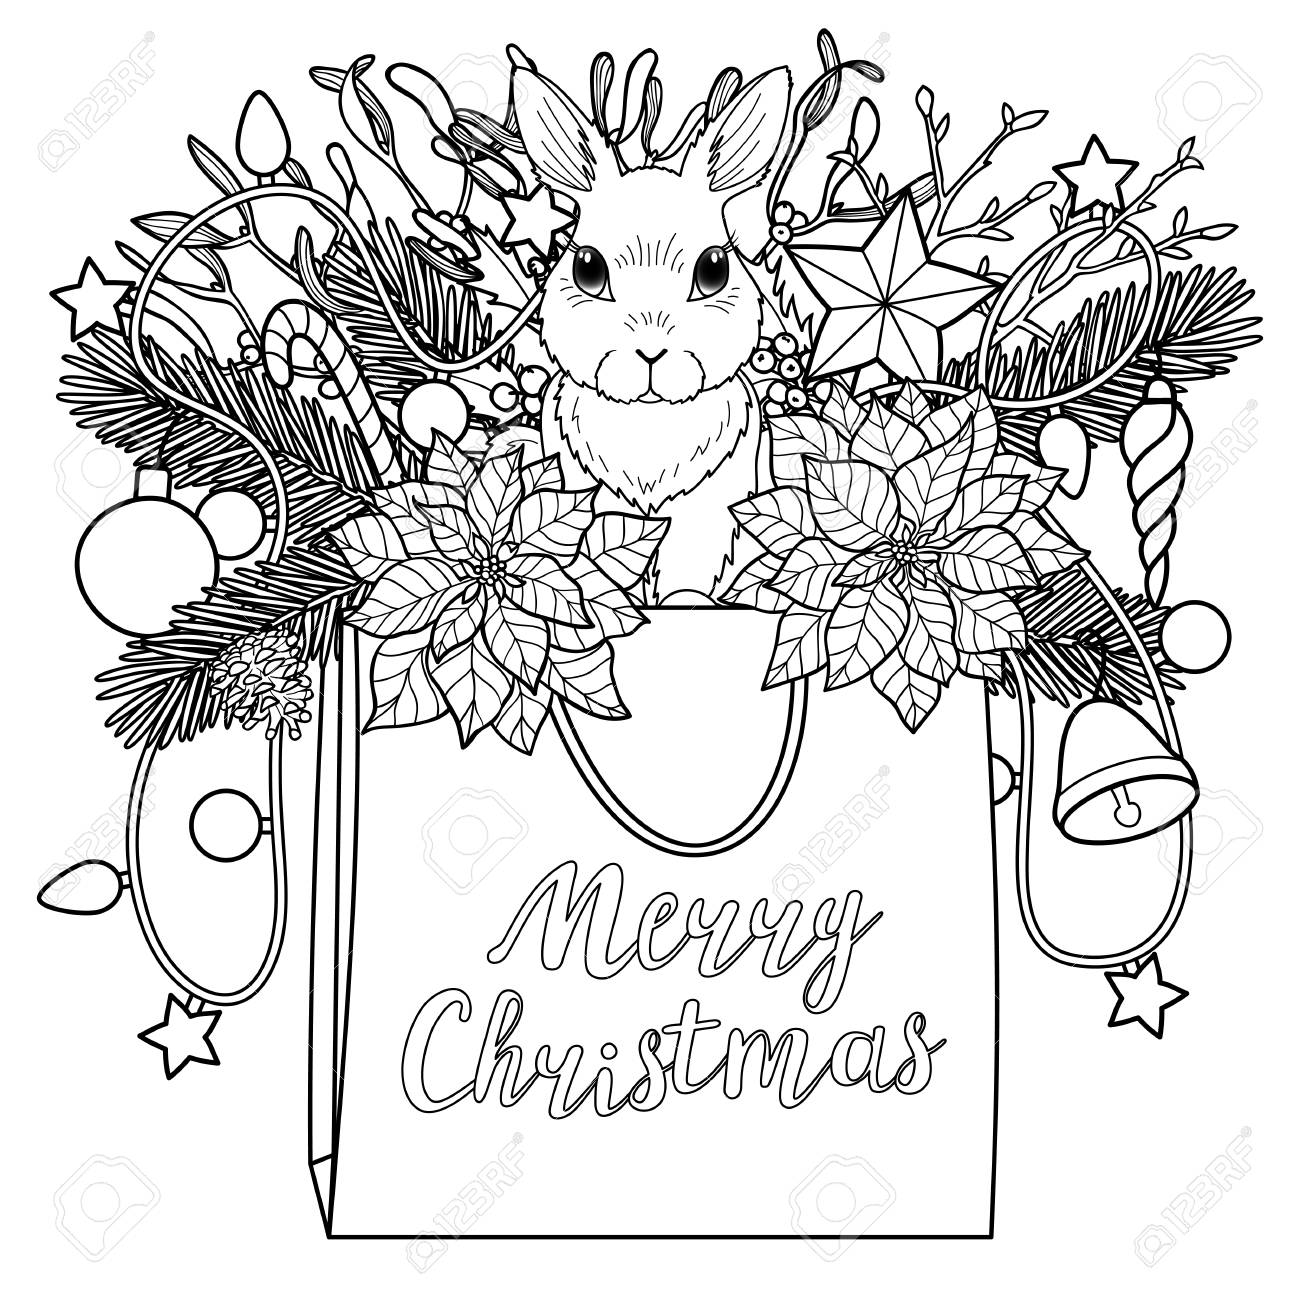 merry christmas coloring greeting composition square black and white pattern with bag rabbit and